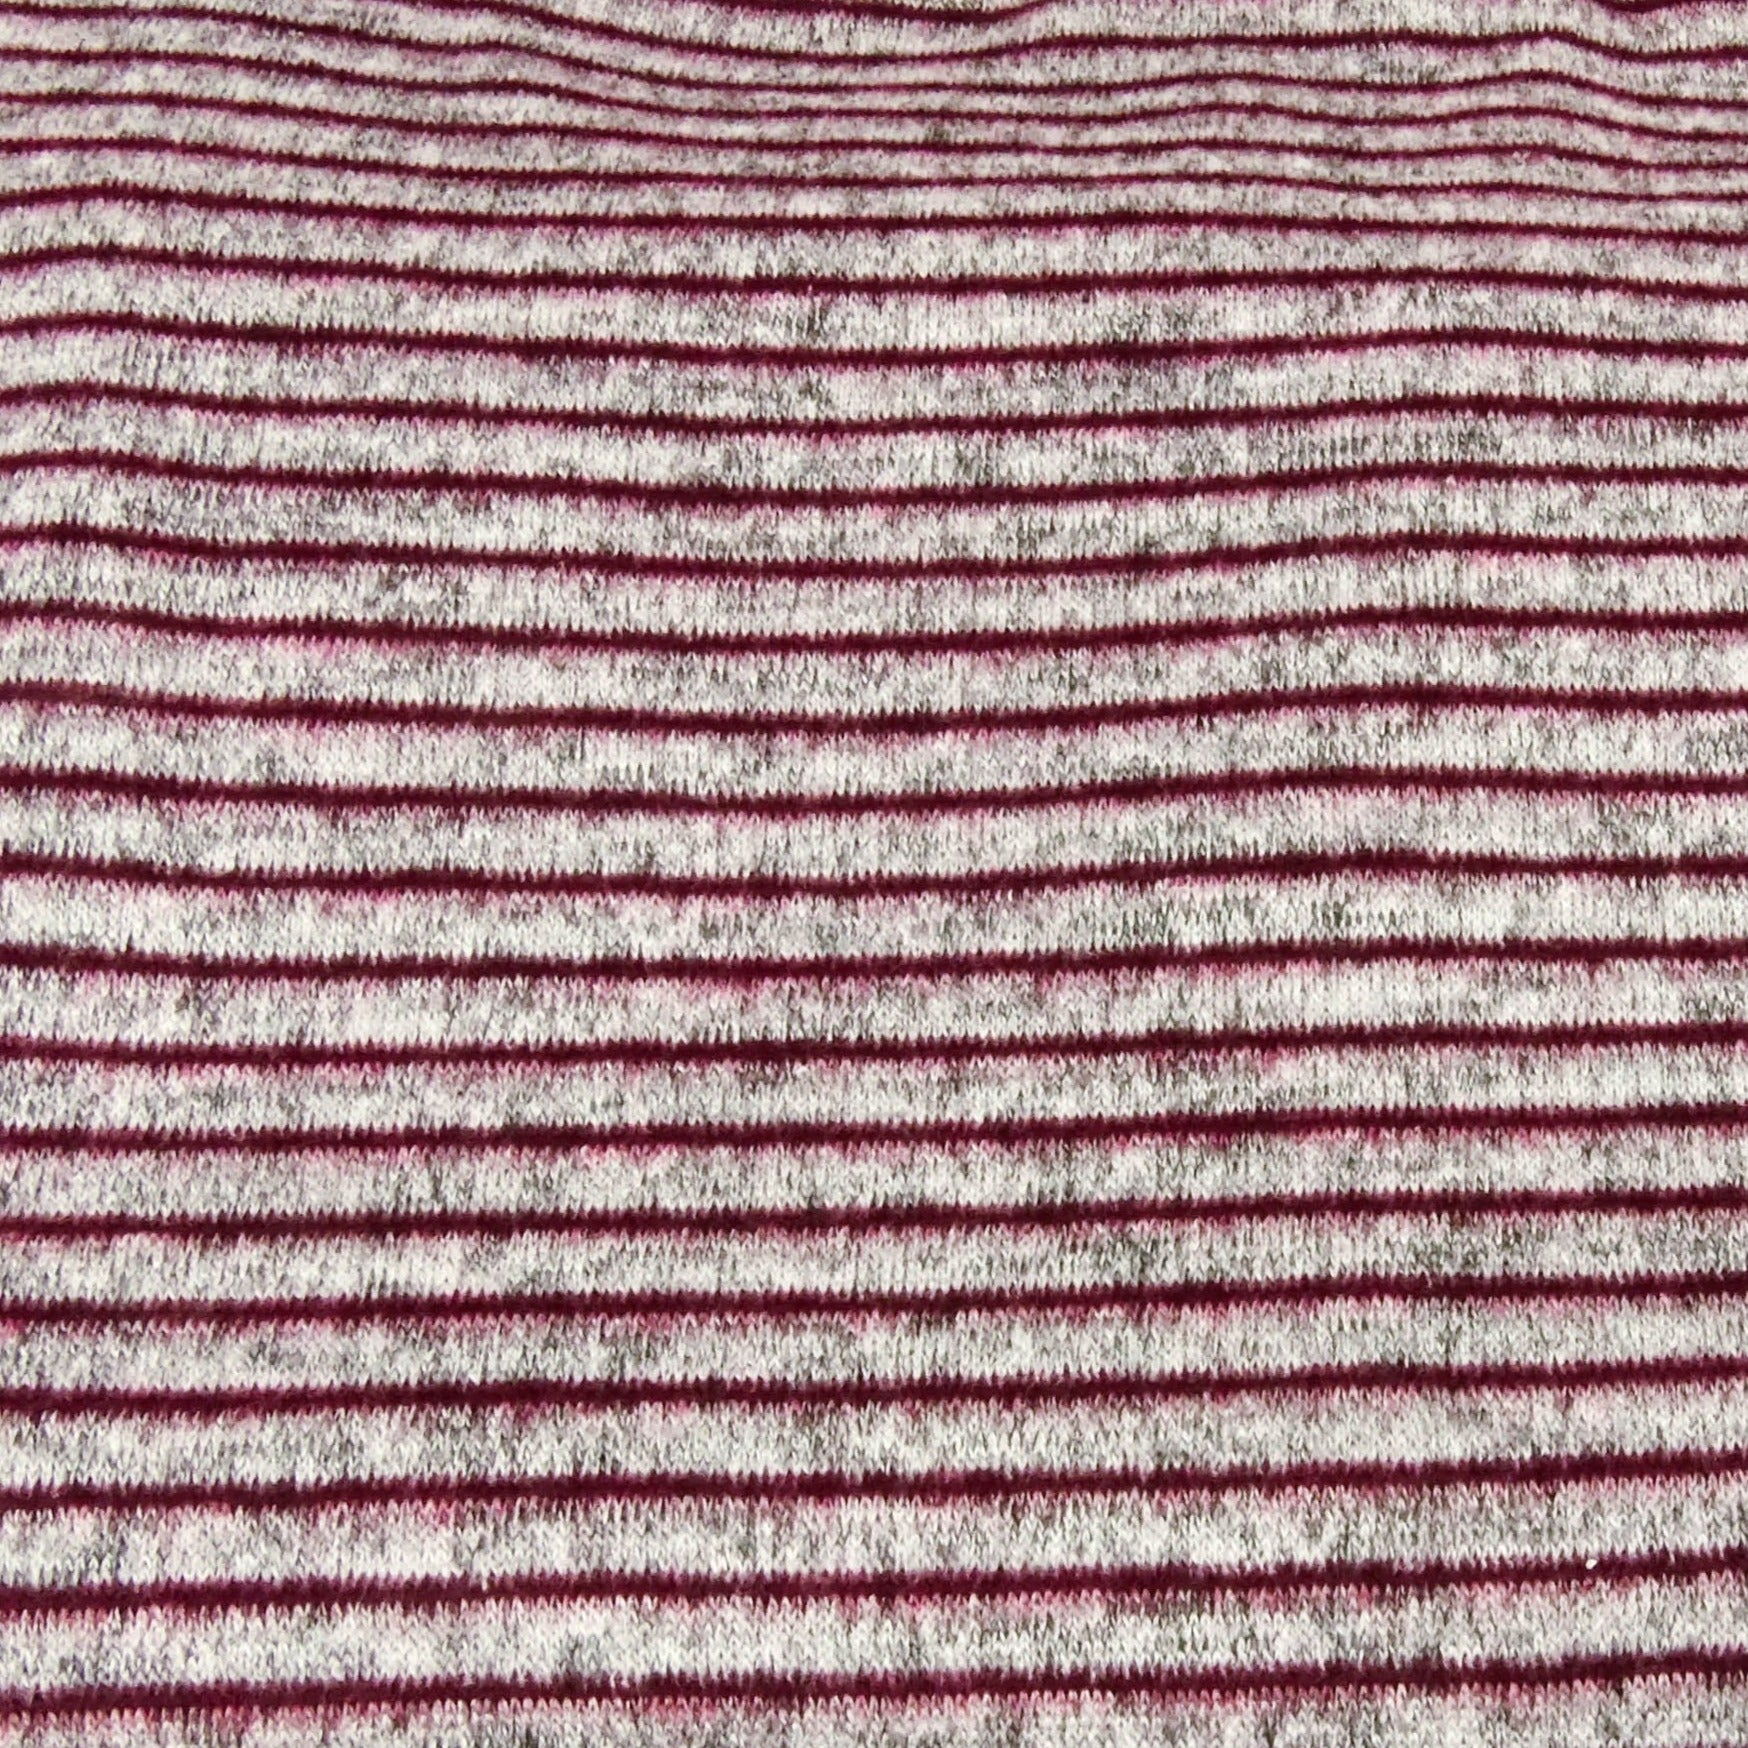 Heather Grey/Burgundy PINSTRIPE - Hacci Sweater Knit - By The Yard